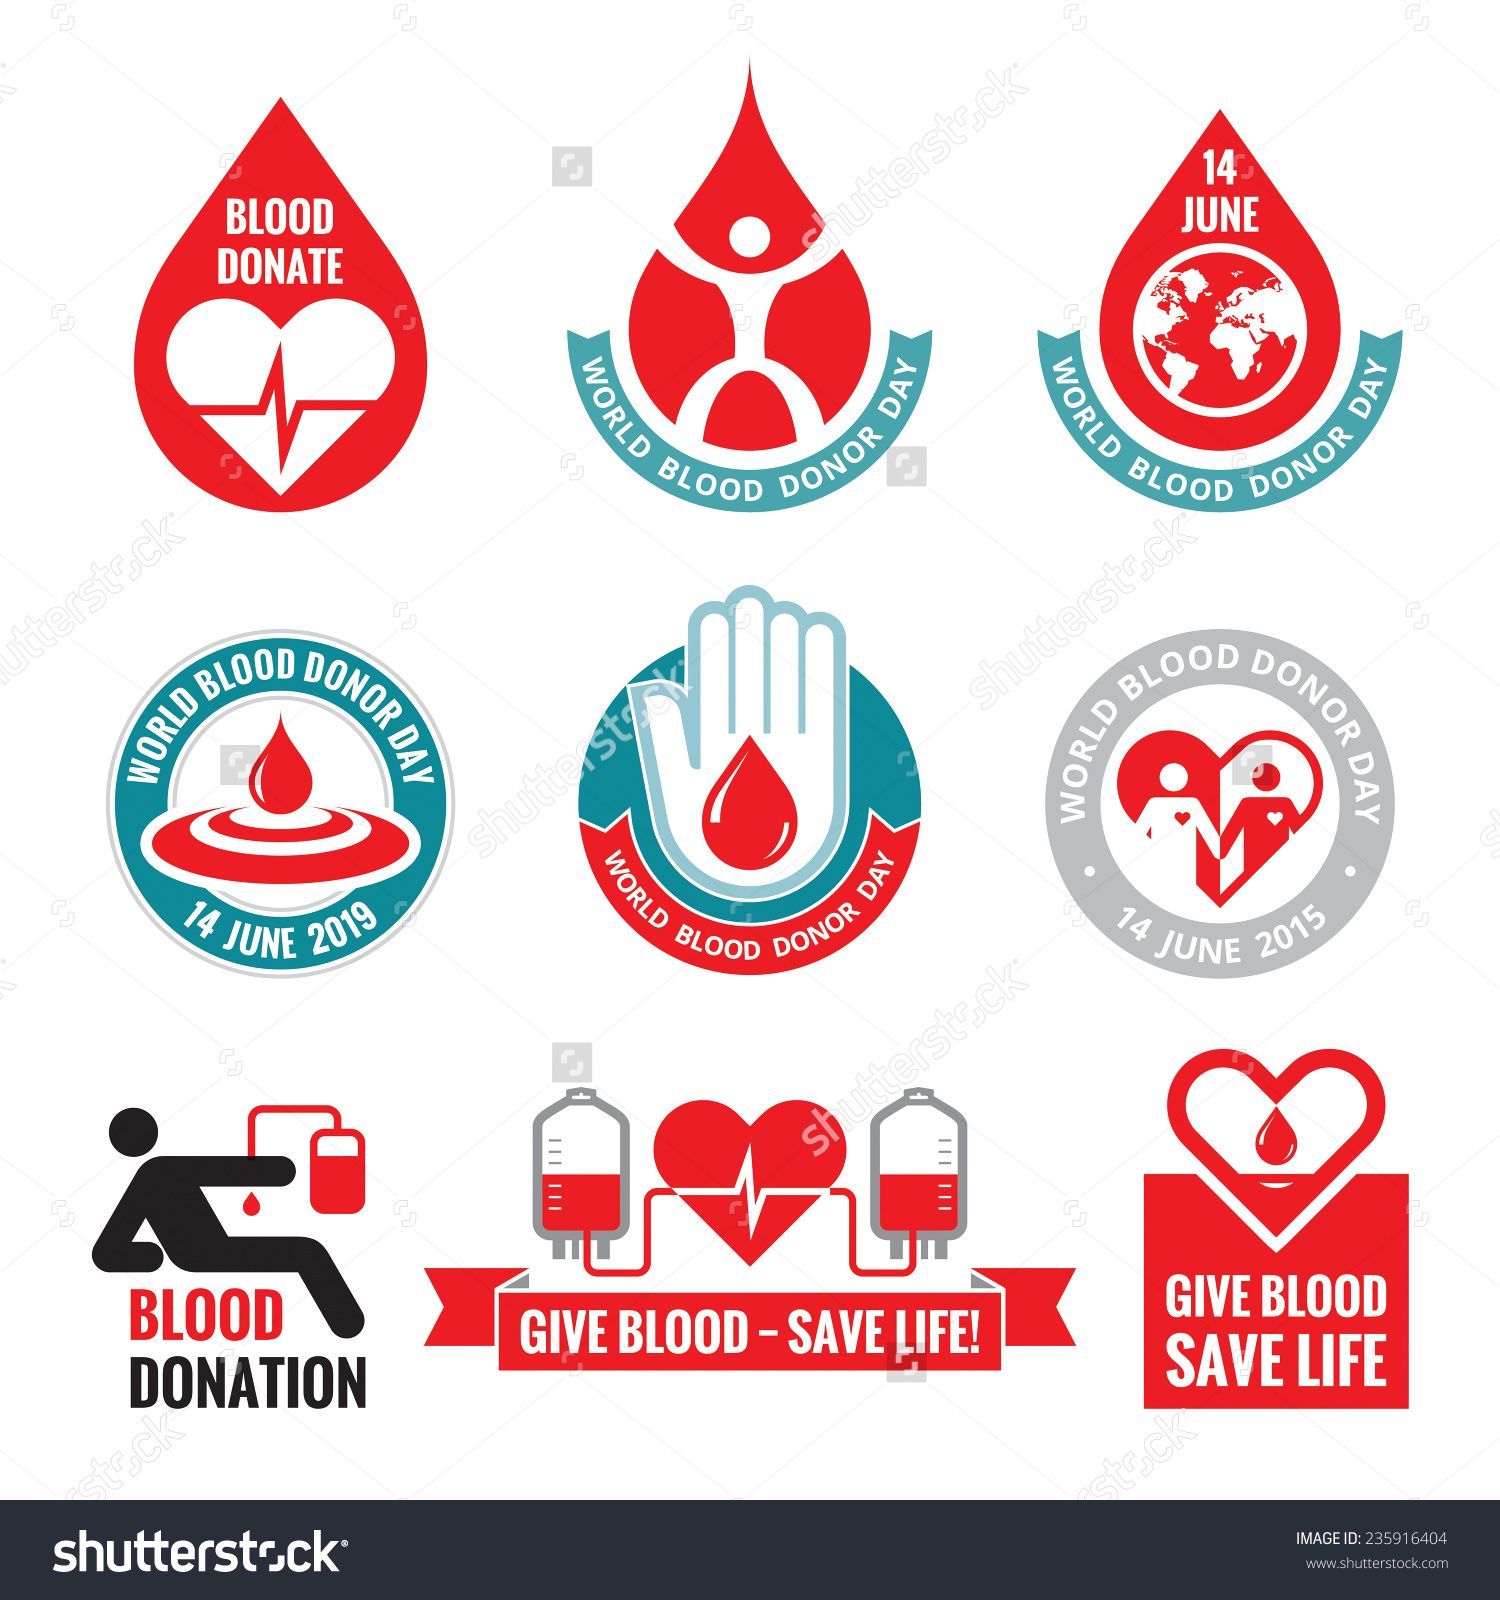 Poster design on blood donation - Picture Or Photo Of Blood Donation Vector Logo Badges Collection World Blood Donor Day 14 June Heart And Blood Drop Illustration